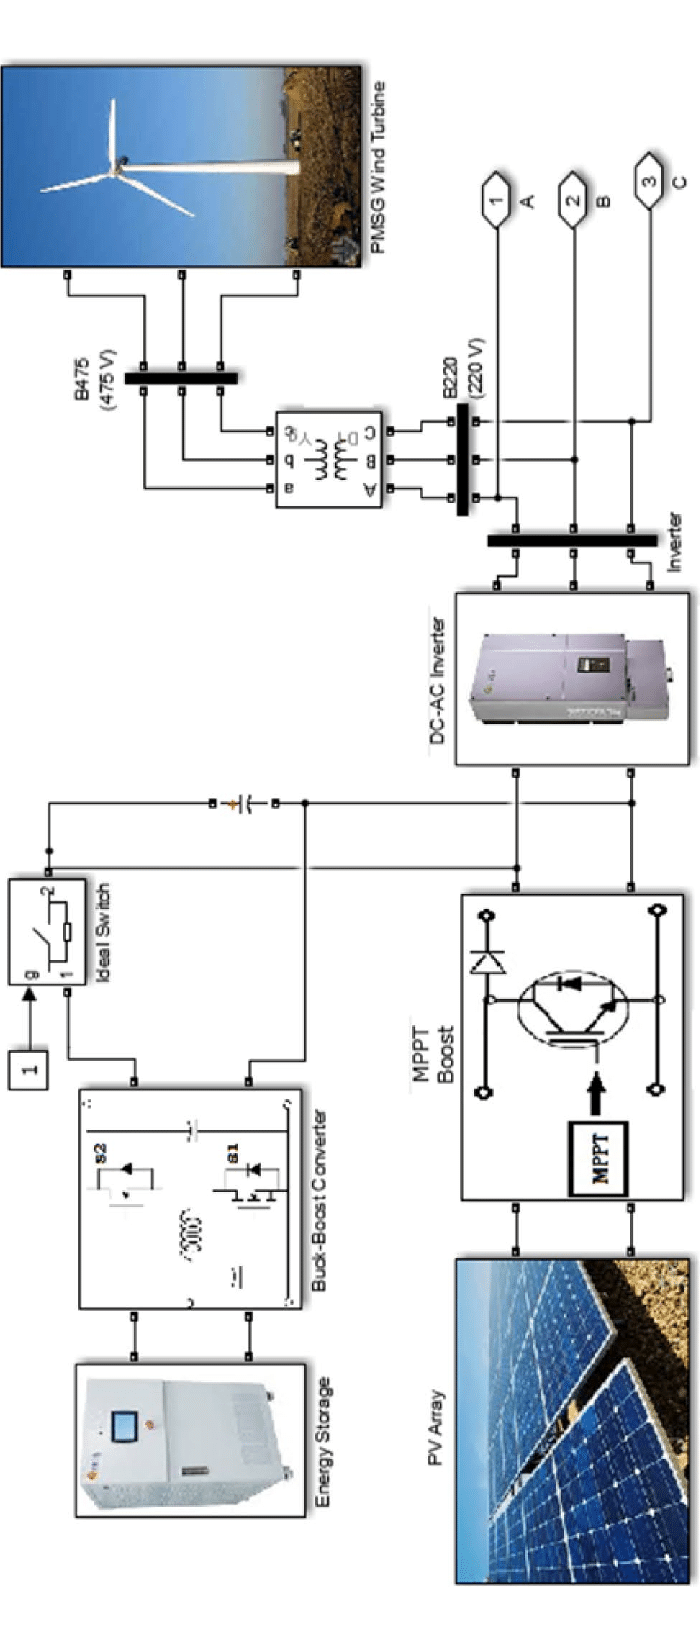 medium resolution of simulink circuit connecting the wind turbine to the battery and pv panels